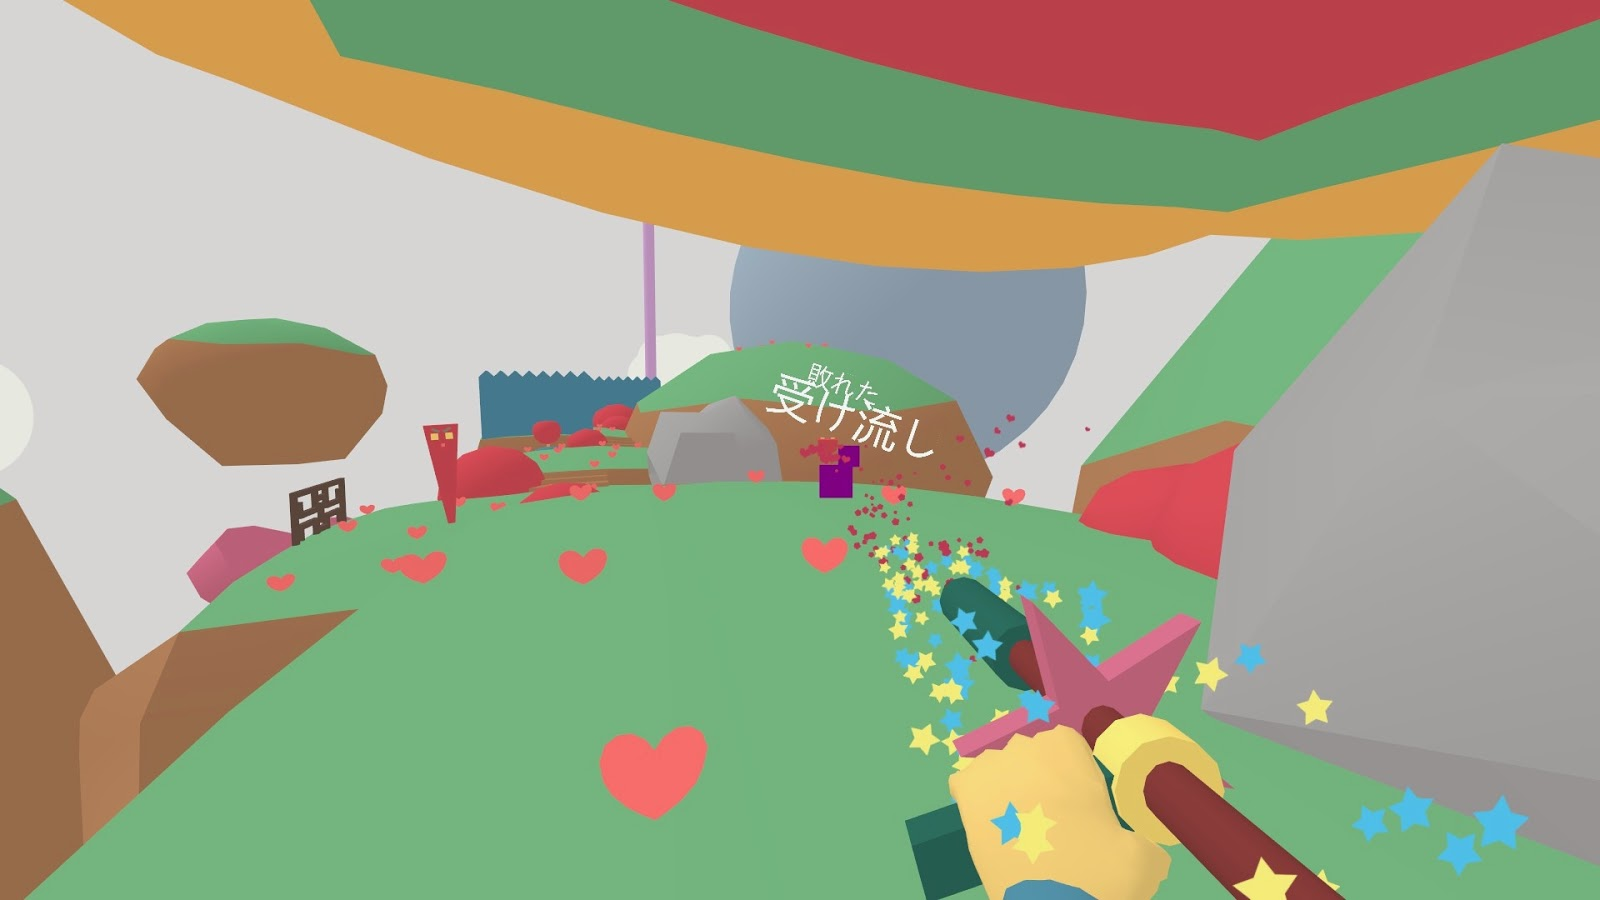 Lovely planet screenshot indie game